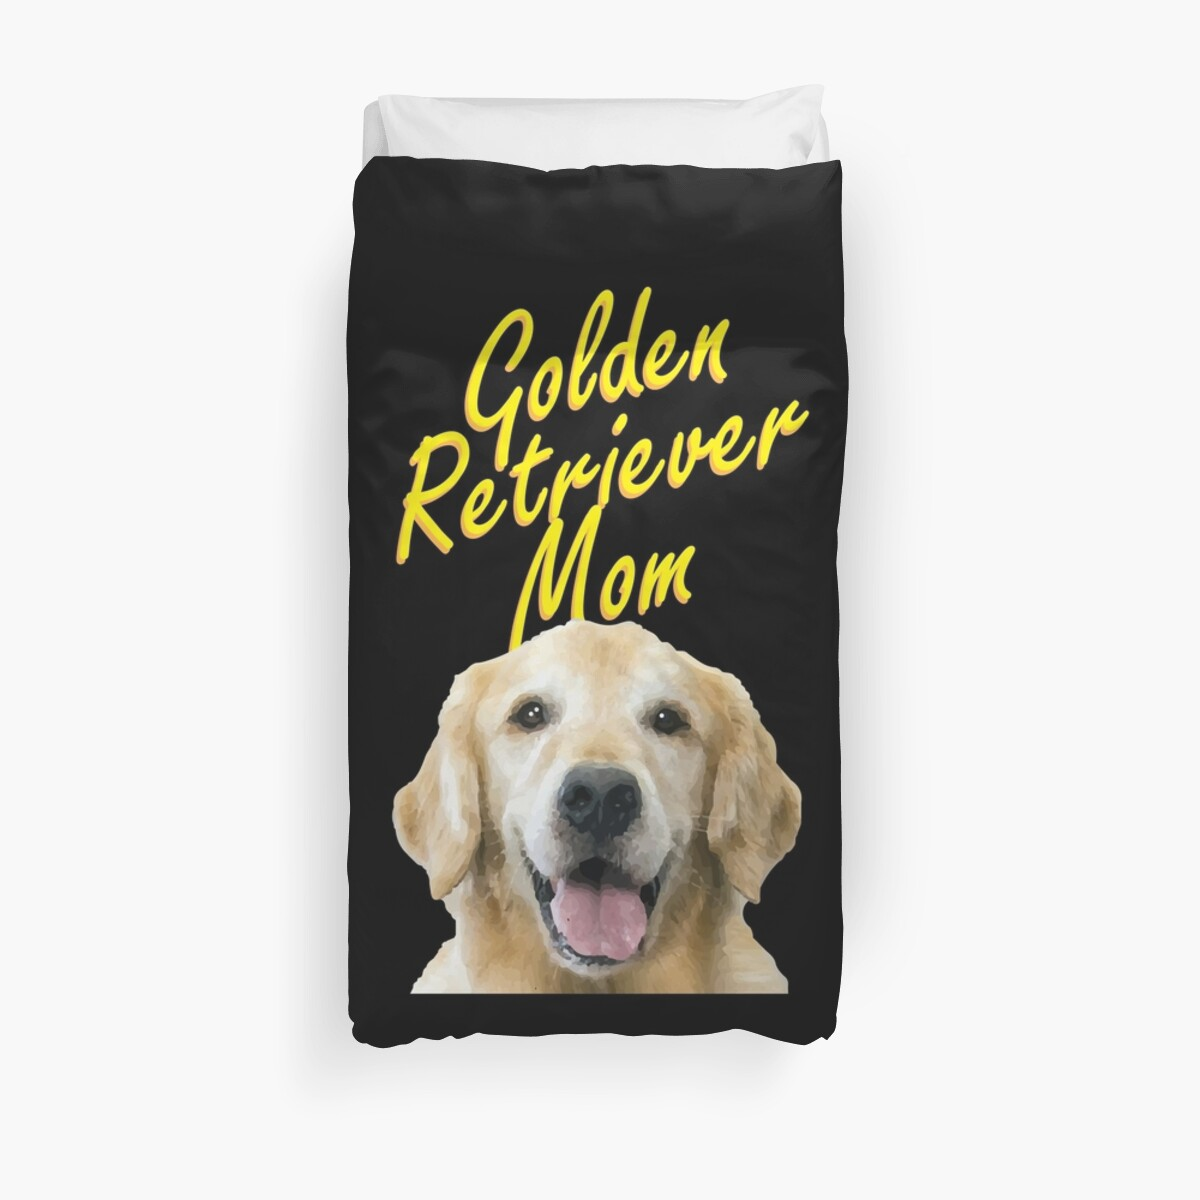 Golden Retriever Mom Gift For Dog Owners Duvet Covers By Trndsttr